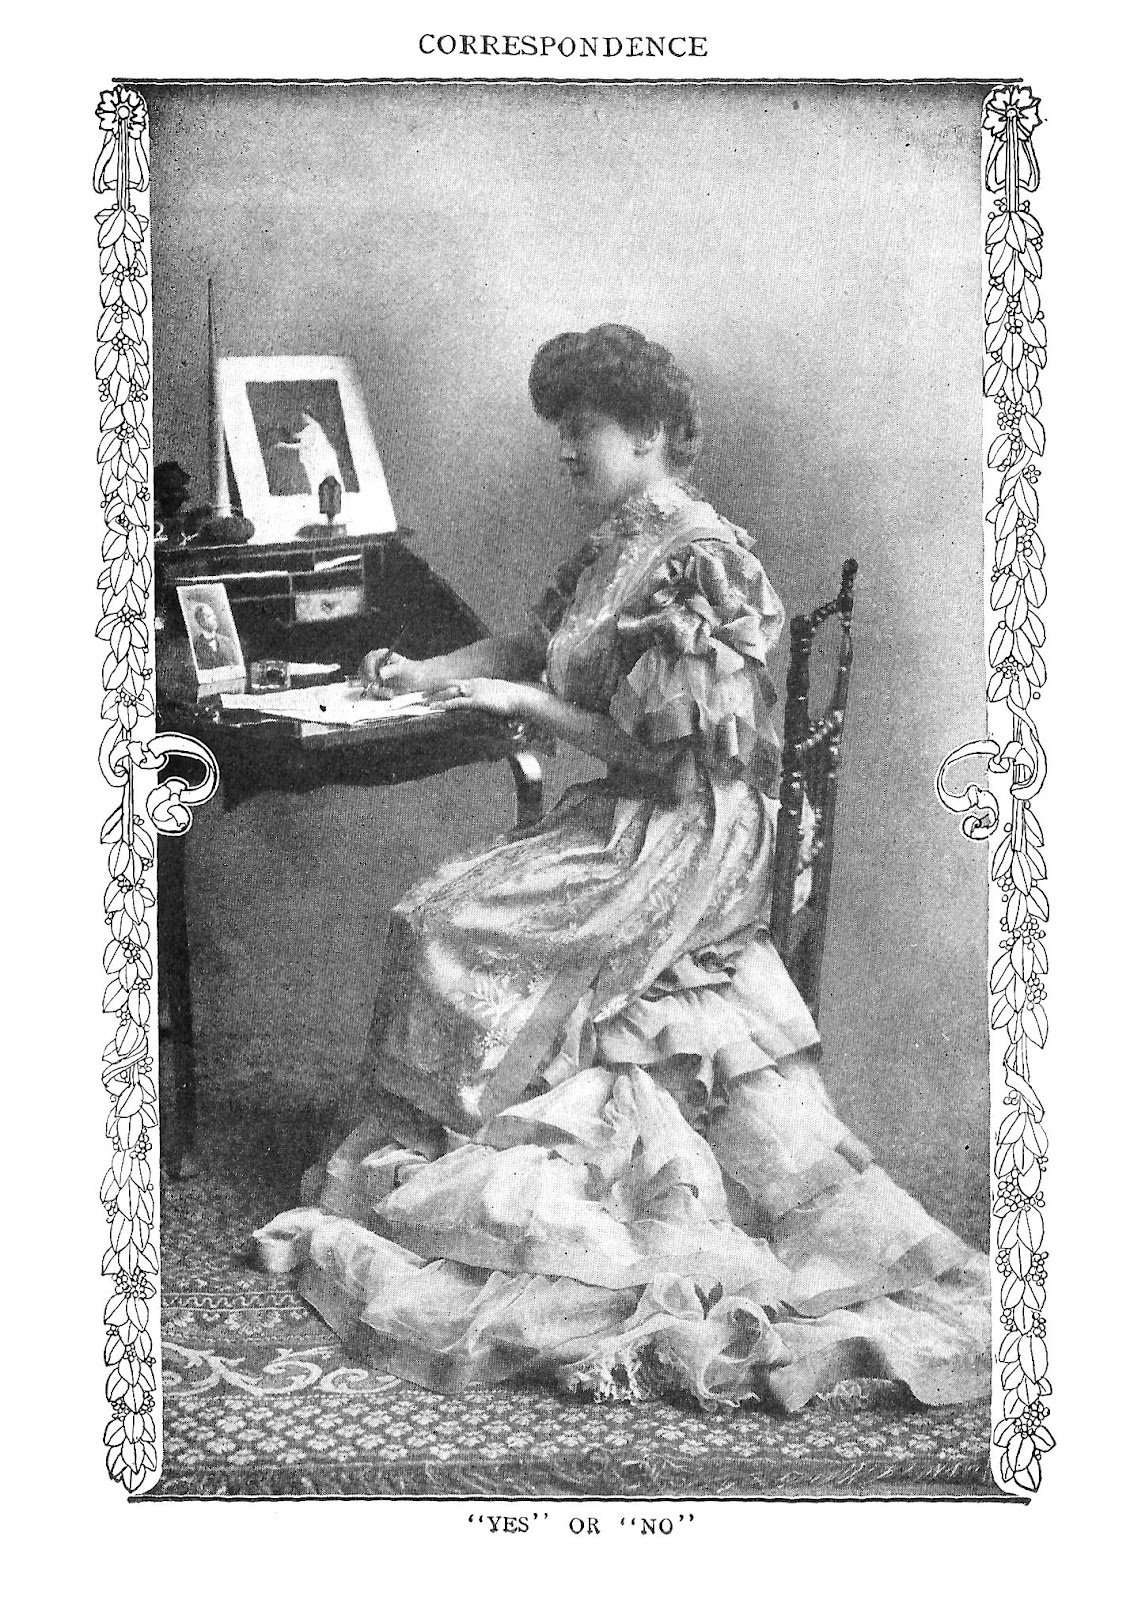 Free Antique Photo of Woman: Antique Photo of Woman Writing a Letter  Sitting at Desk - Antique Images: Free Antique Photo Of Woman: Antique Photo Of Woman